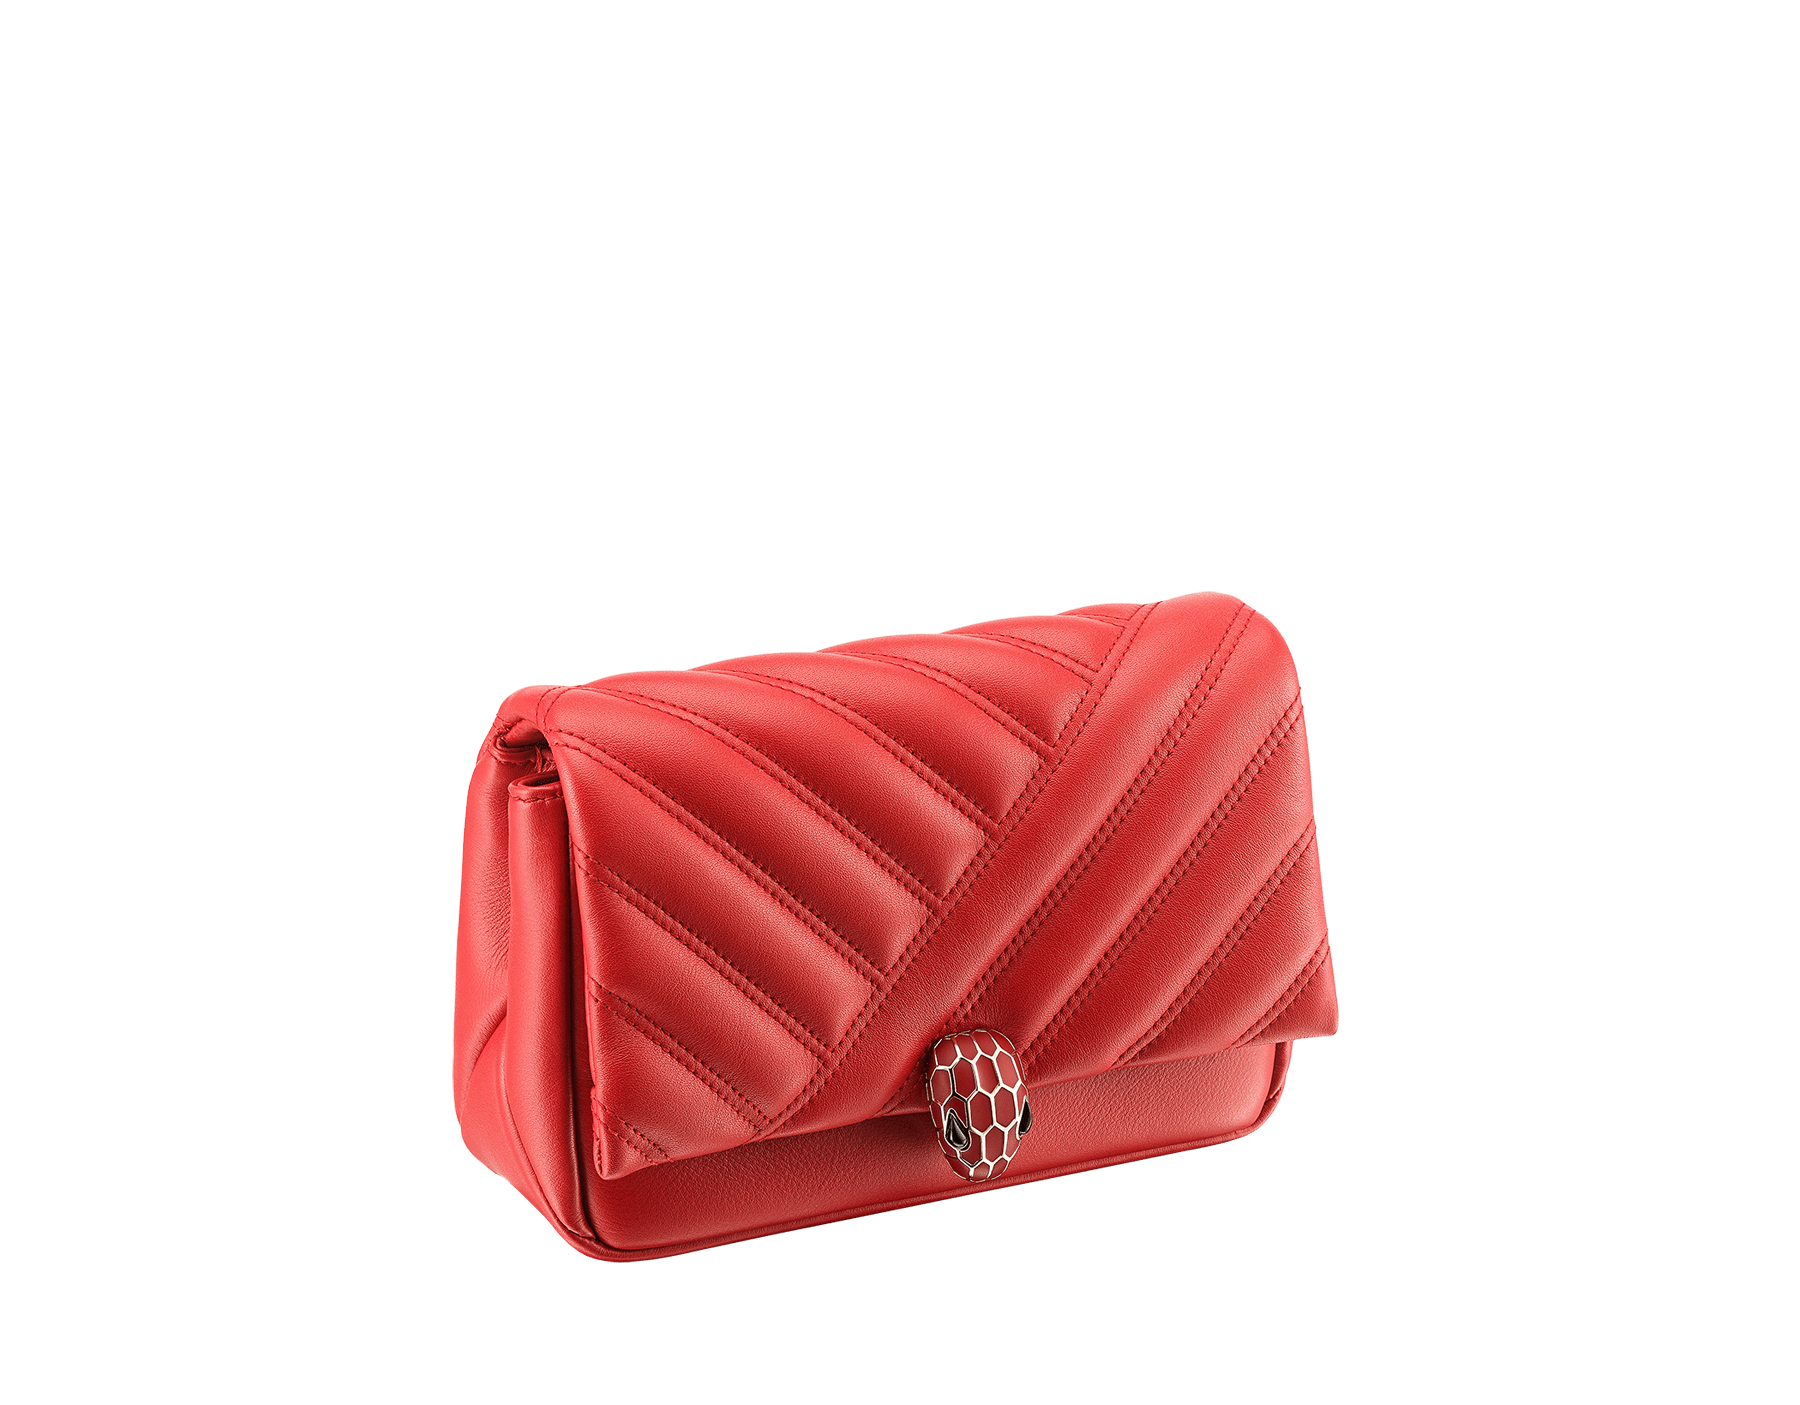 Serpenti Cabochon micro bag in soft matelassé carmine jasper calf leather, with a graphic motif. Brass light gold plated tempting snakehead closure in carmine jasper enamel and black onyx eyes. 288756 image 2